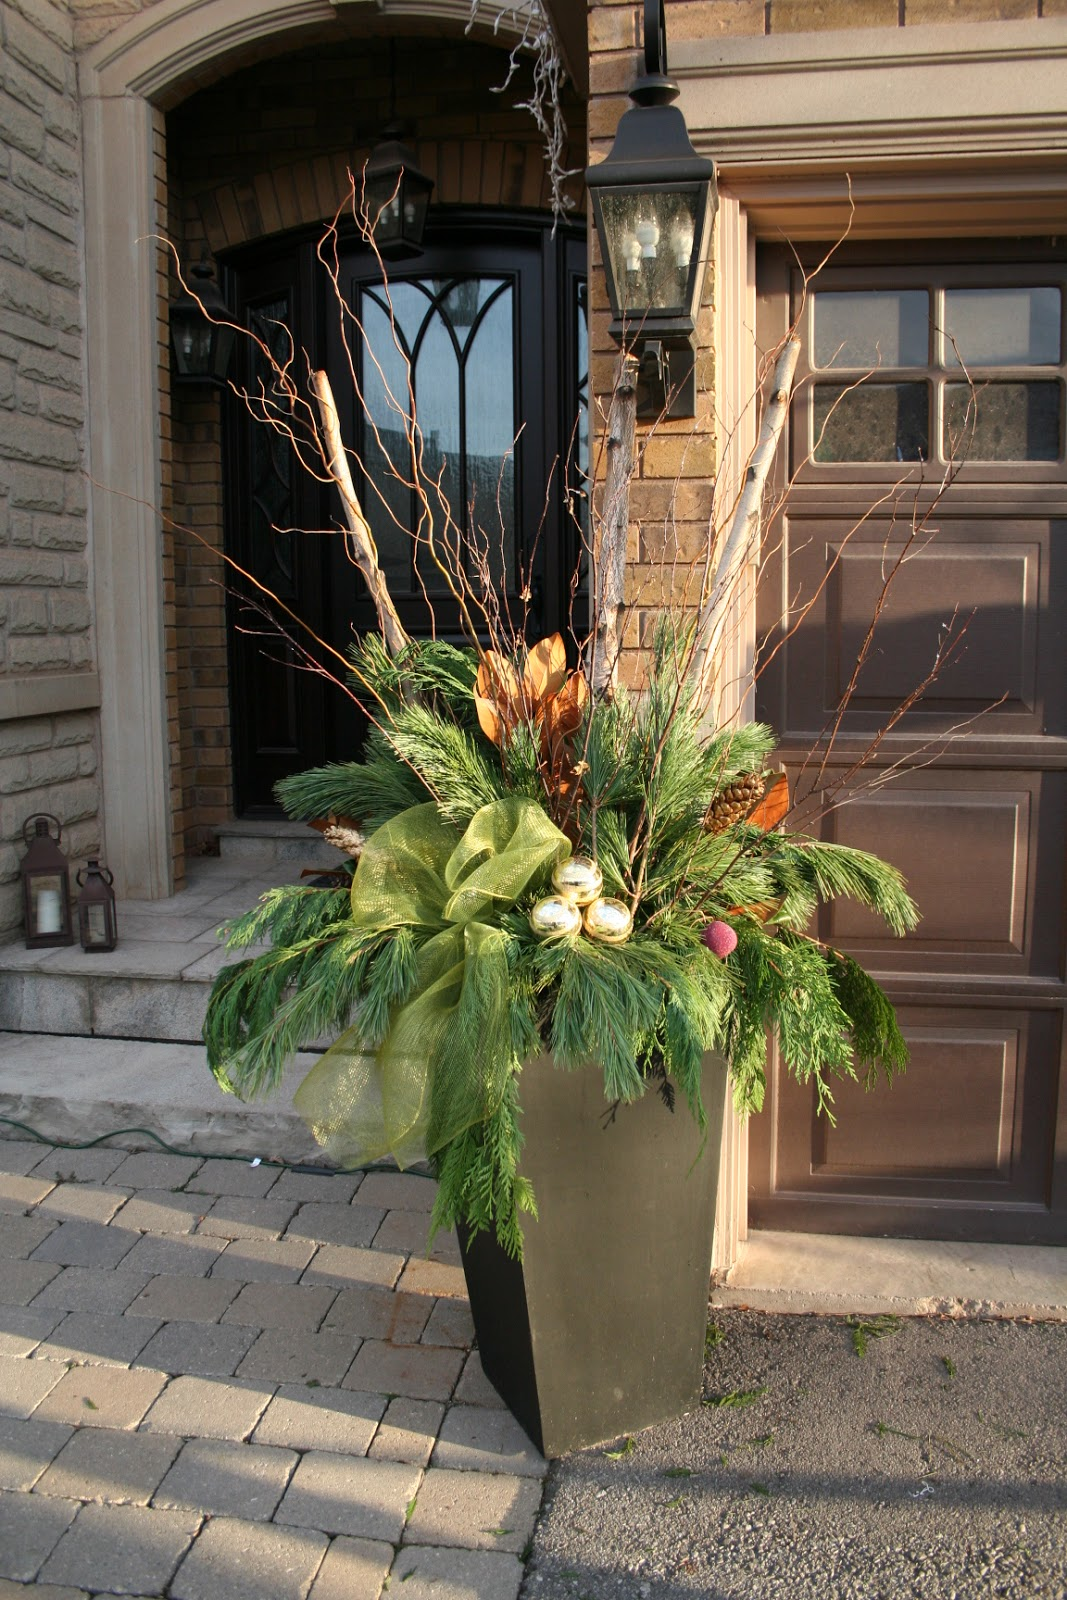 Ideas 2 Inspire Christmas Planters ~ 032547_Holiday Decorating Ideas For Outdoor Planters